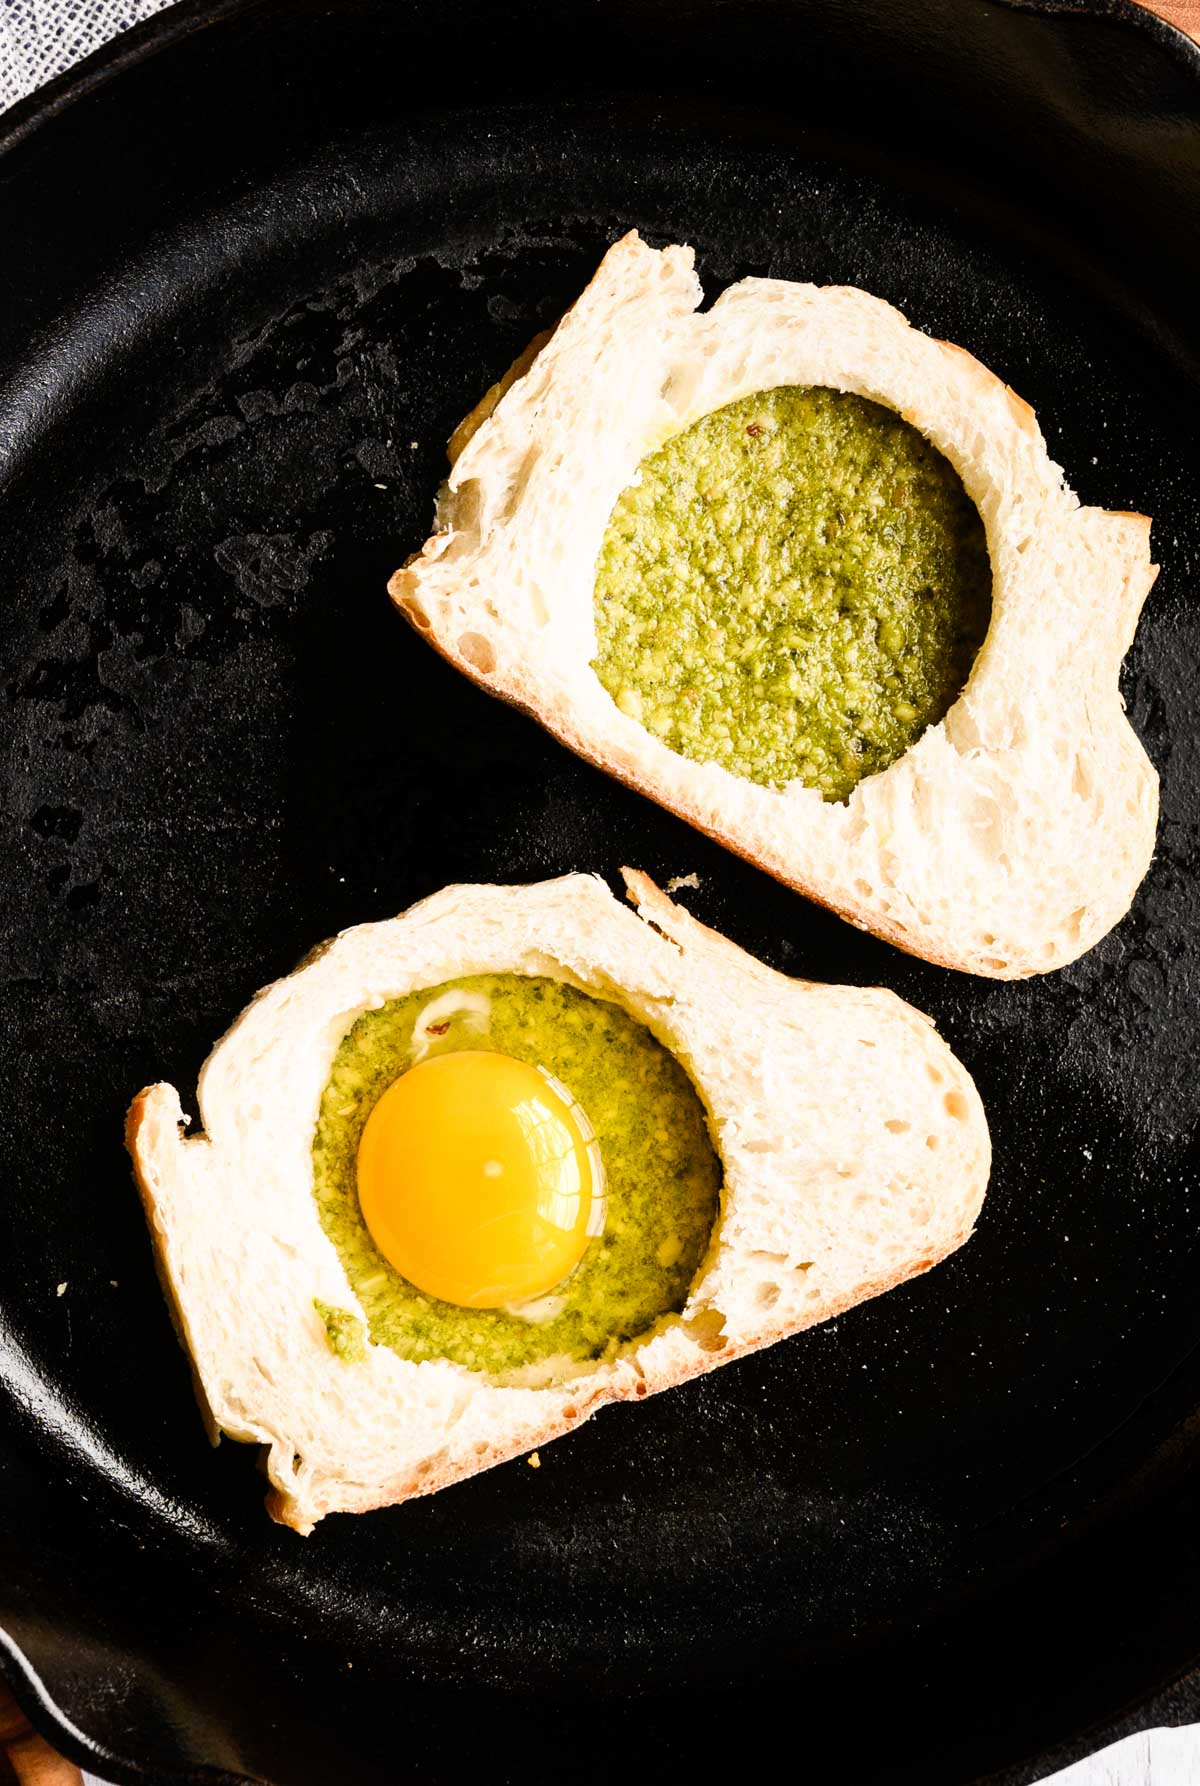 two pesto filled pieces of bread and one with an egg cooking in it